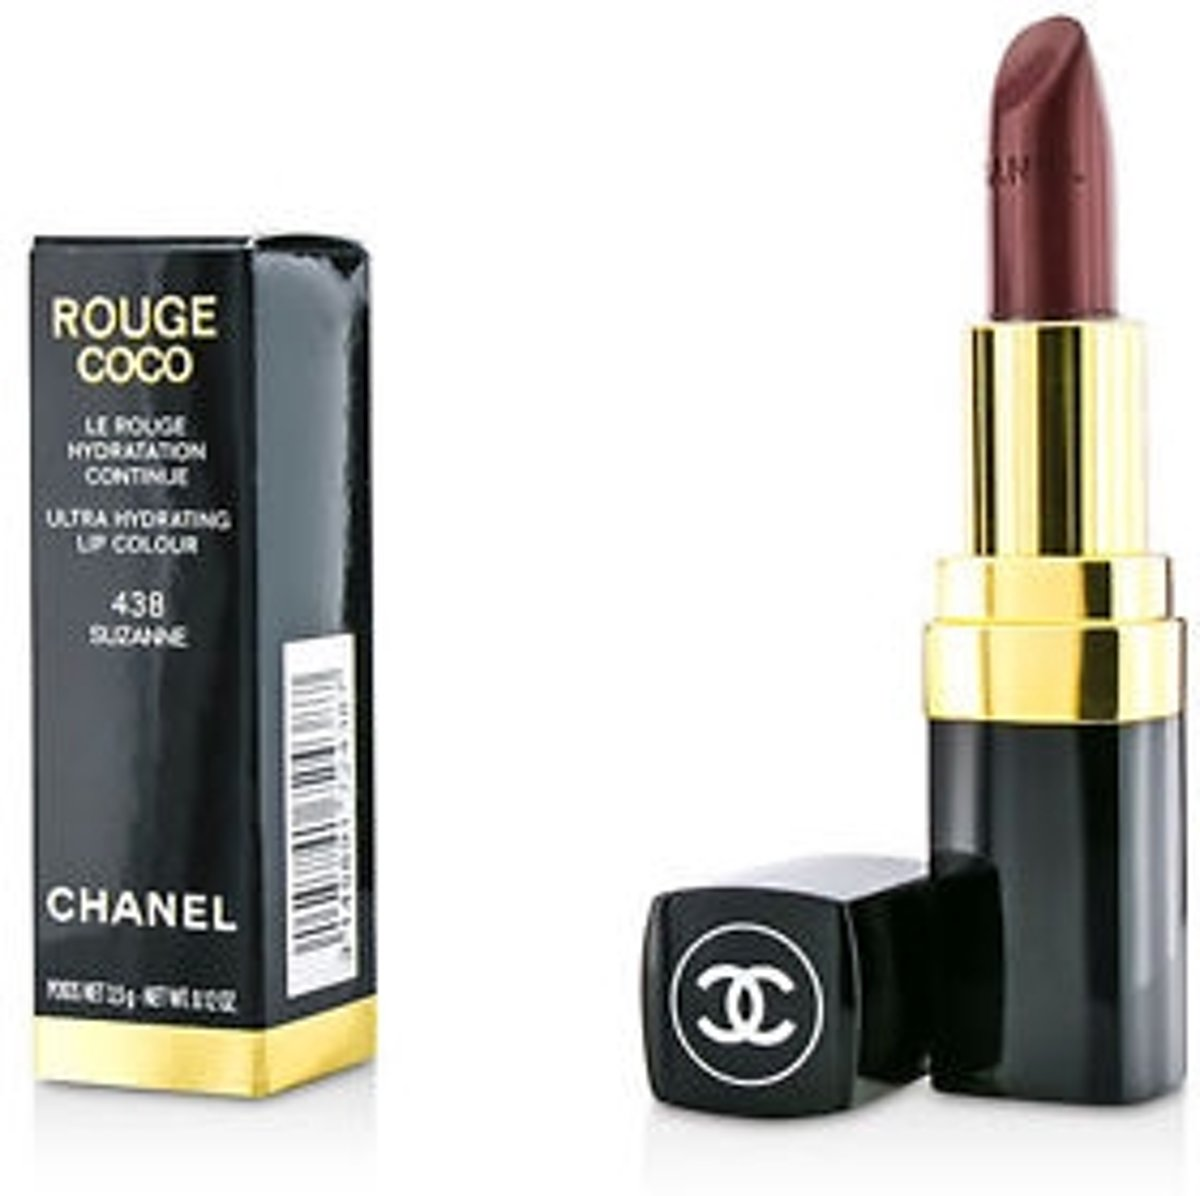 chanel rouge coco 438 suzanne lippenstift 3145891724387 prijs. Black Bedroom Furniture Sets. Home Design Ideas